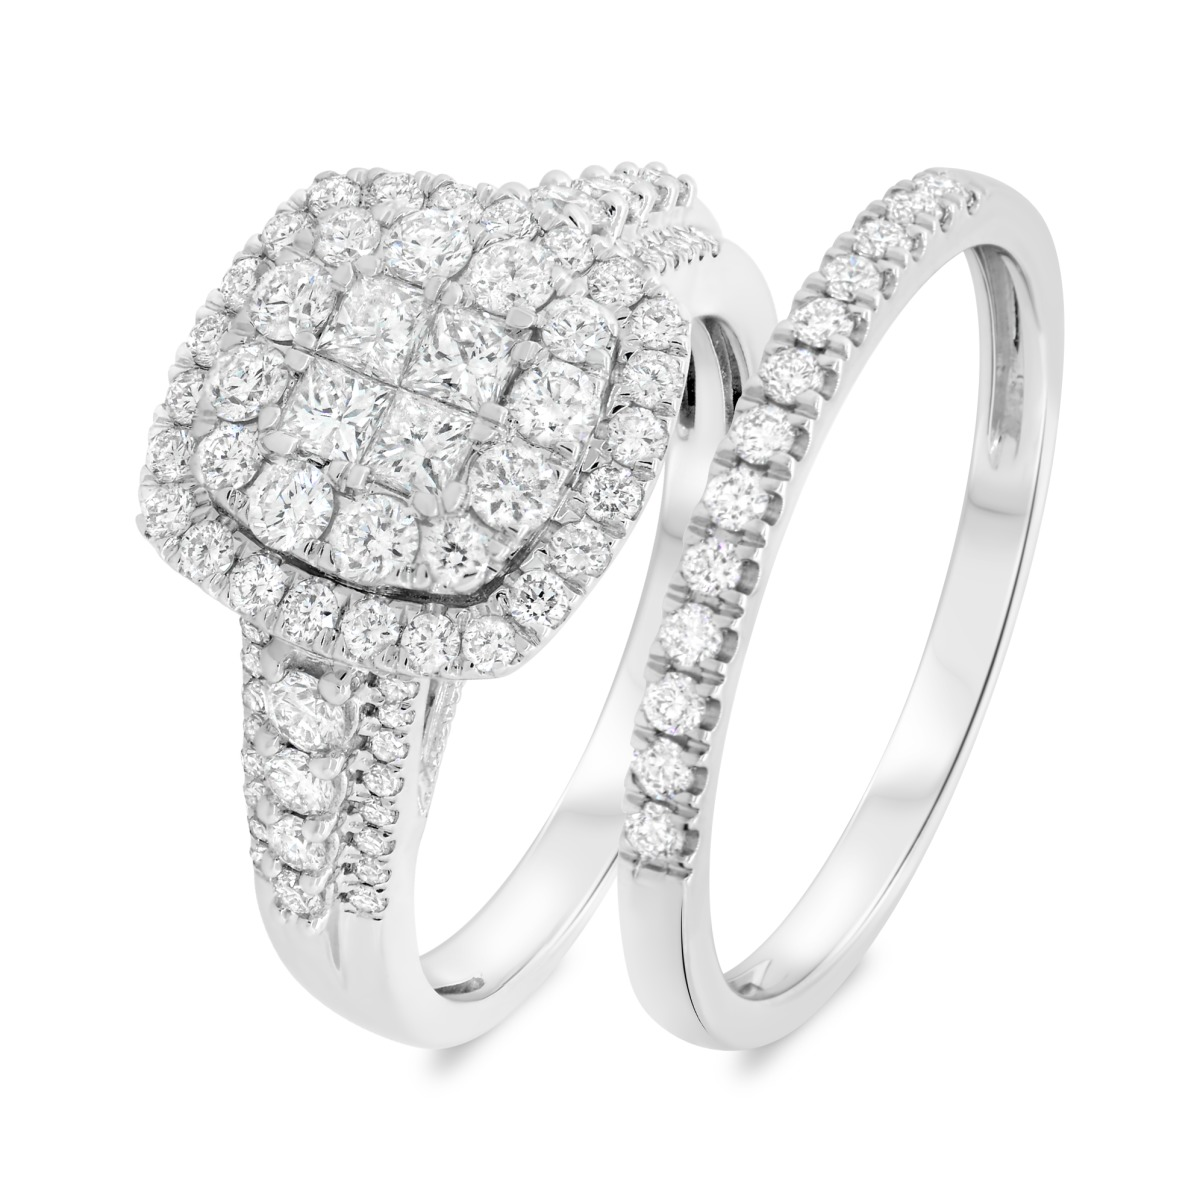 1 1/2 Carat T.W. Diamond Matching Bridal Ring Set 14K White Gold